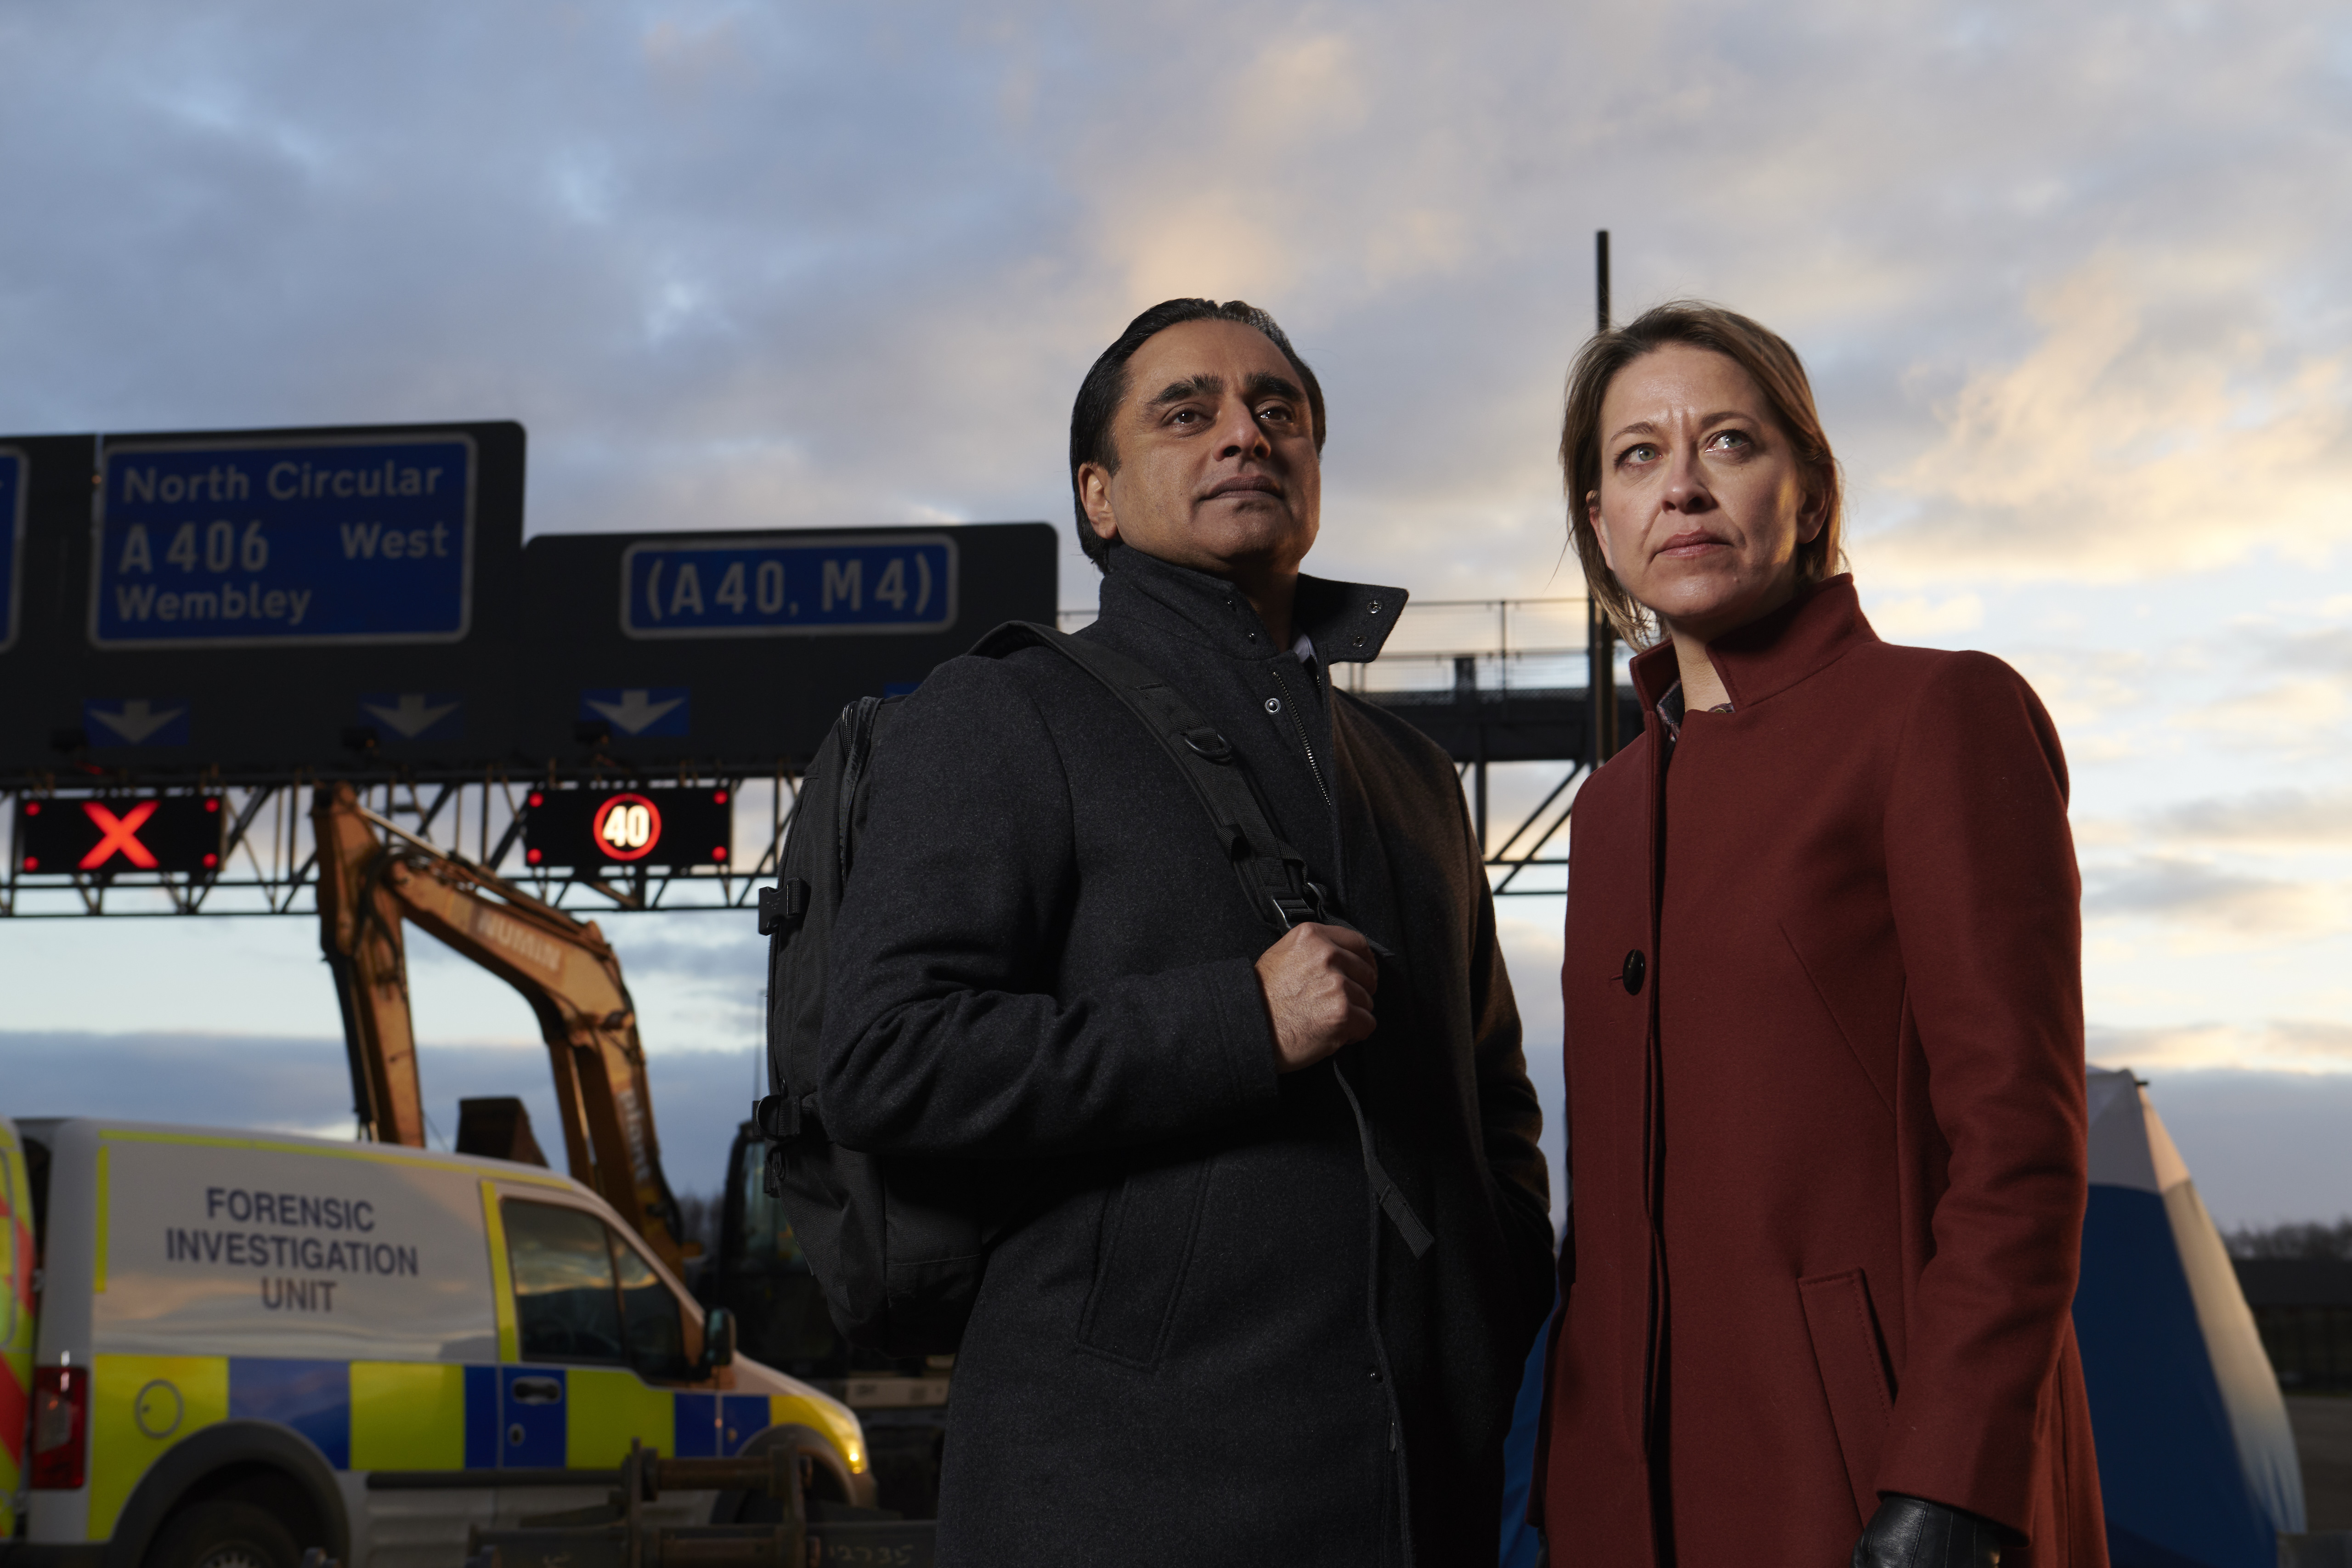 UNFORGOTTEN_EPISODE 1